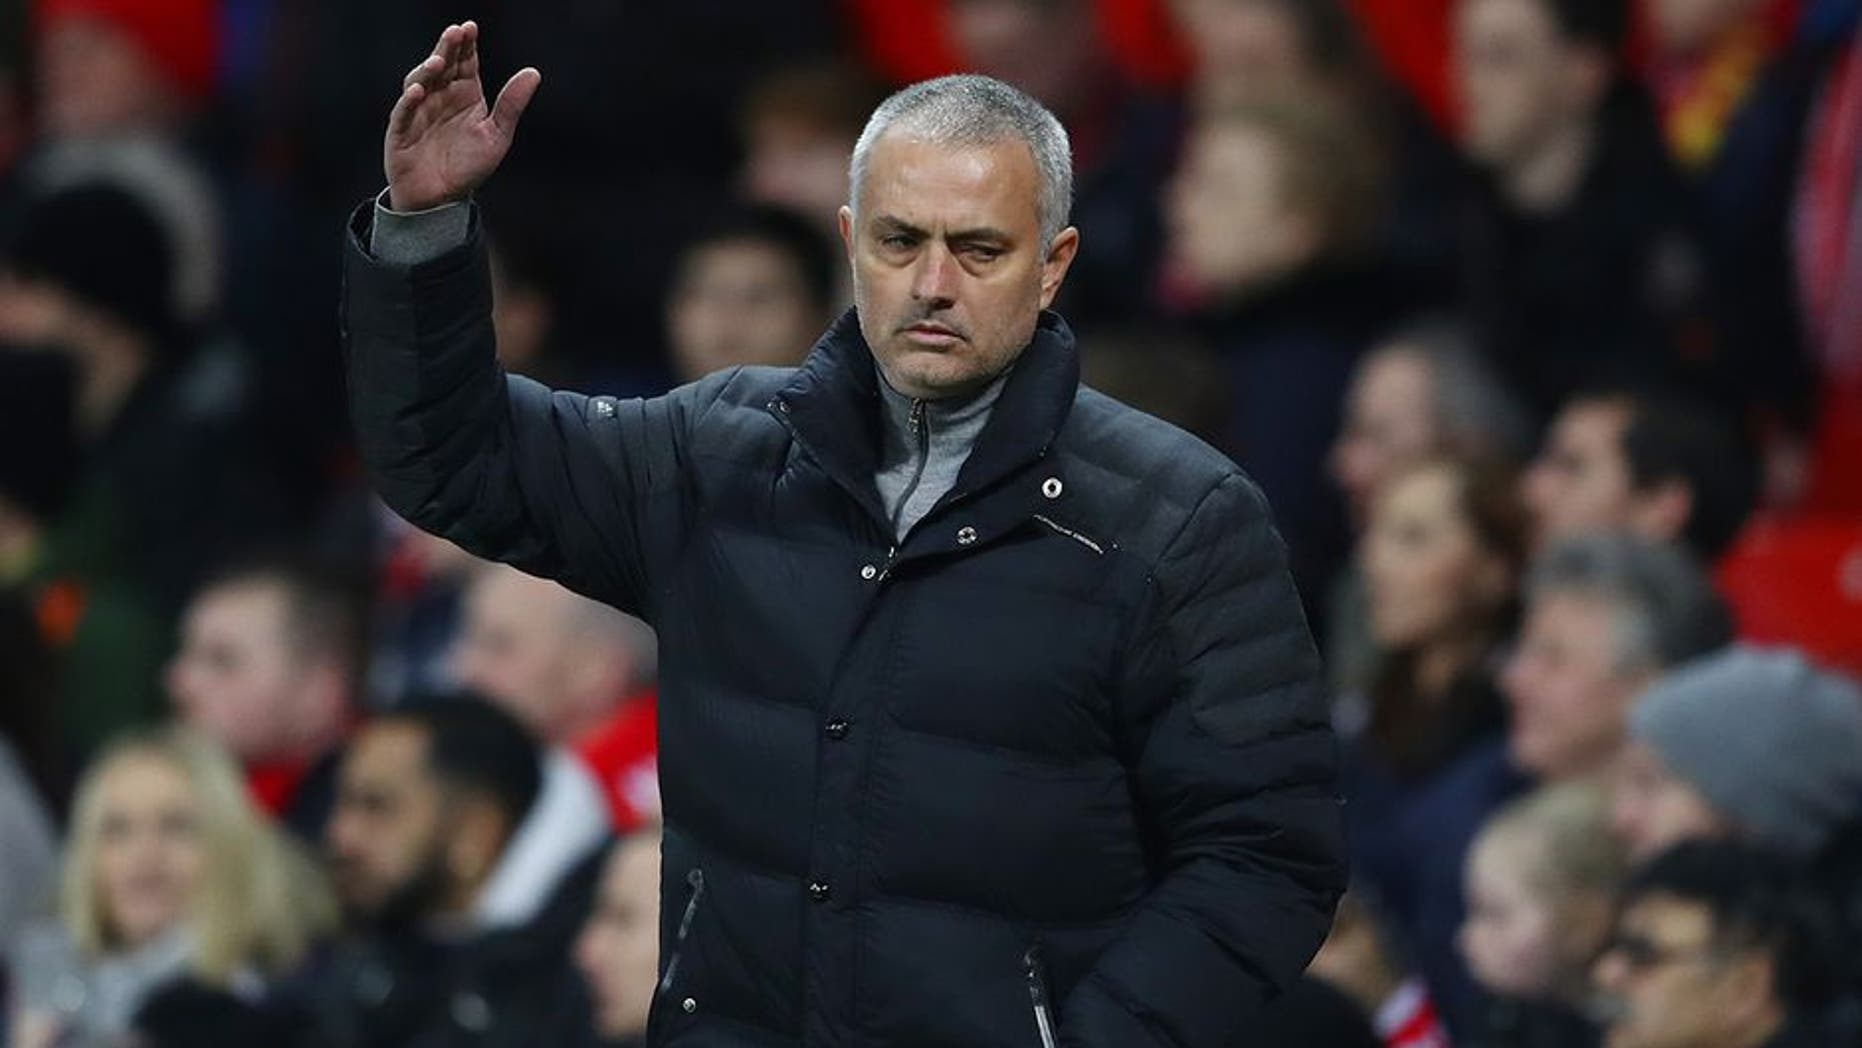 MANCHESTER, ENGLAND - FEBRUARY 01: Jose Mourinho, Manager of Manchester United reacts during the Premier League match between Manchester United and Hull City at Old Trafford on February 1, 2017 in Manchester, England. (Photo by Clive Mason/Getty Images)